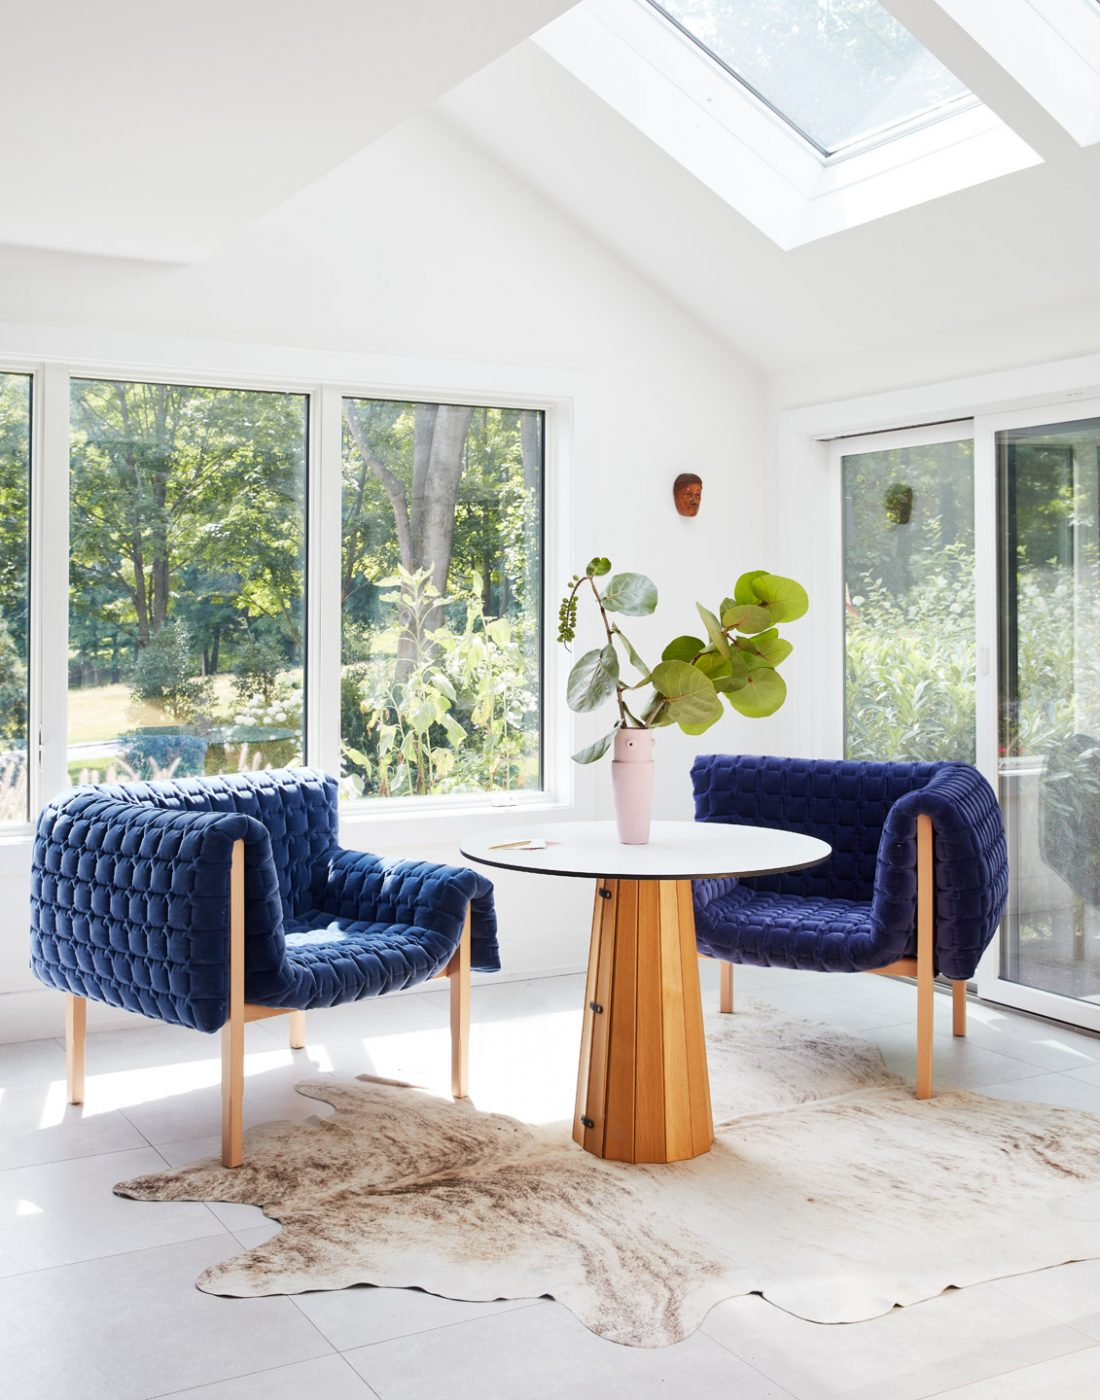 The breakfast nook of an Oyster Bay house with interiors by Danielle Fennoy of Revamp Interior Design